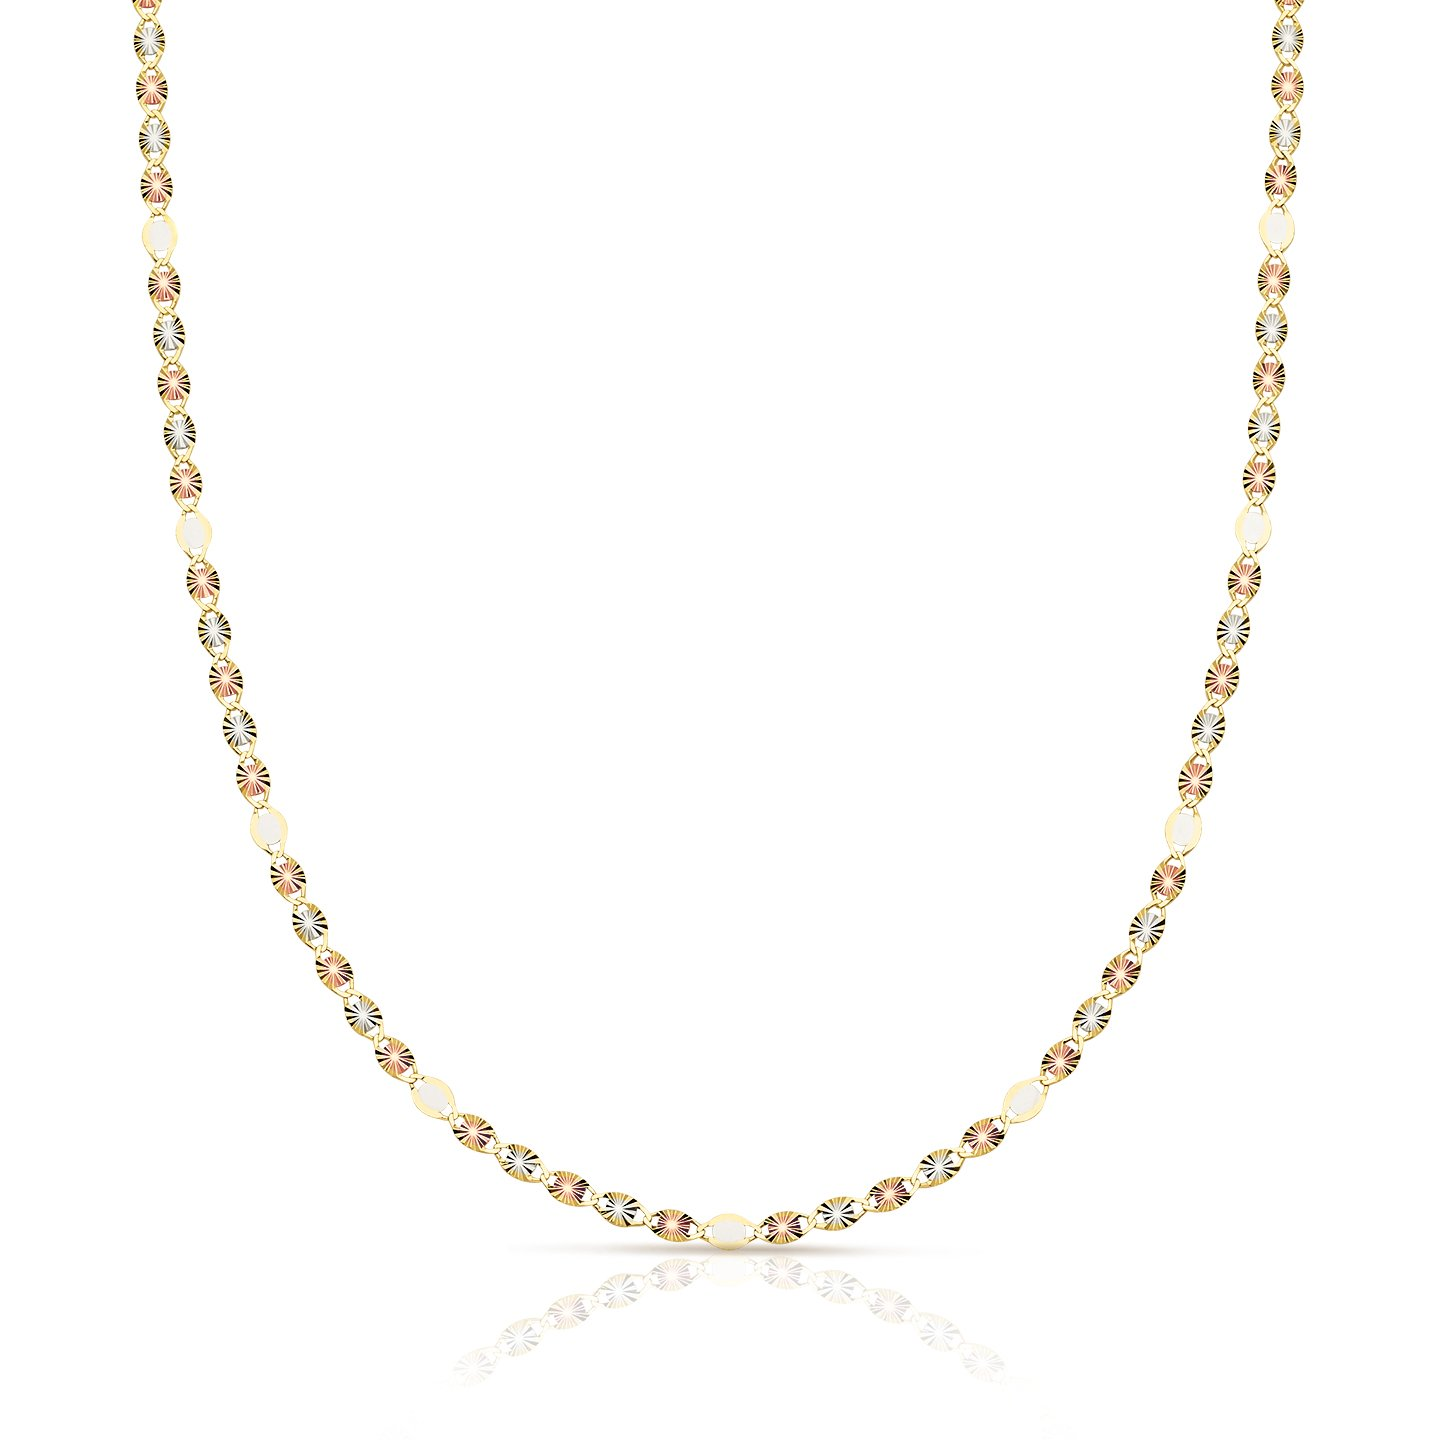 Fancy Tri- Color 14K Valentino Chain, Rose Gold, Yellow Gold, and White Gold (18) by Jewel Connection (Image #2)